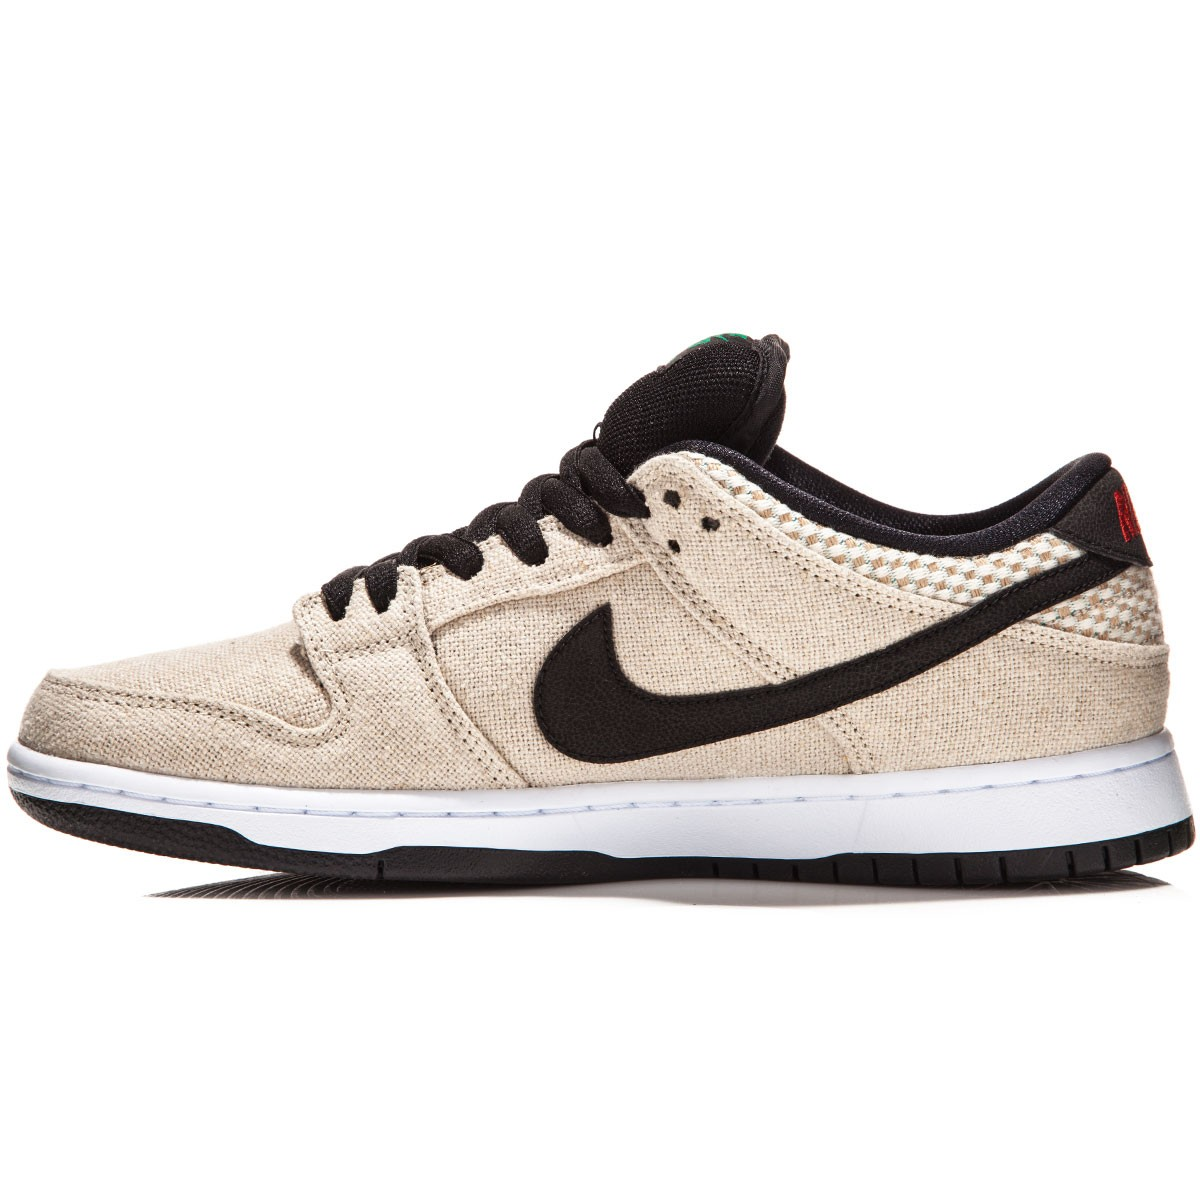 9ae5f4332067f ... discount nike sb dunk low premium raw canvas shoes bamboo white red  black fc3fd 373a1